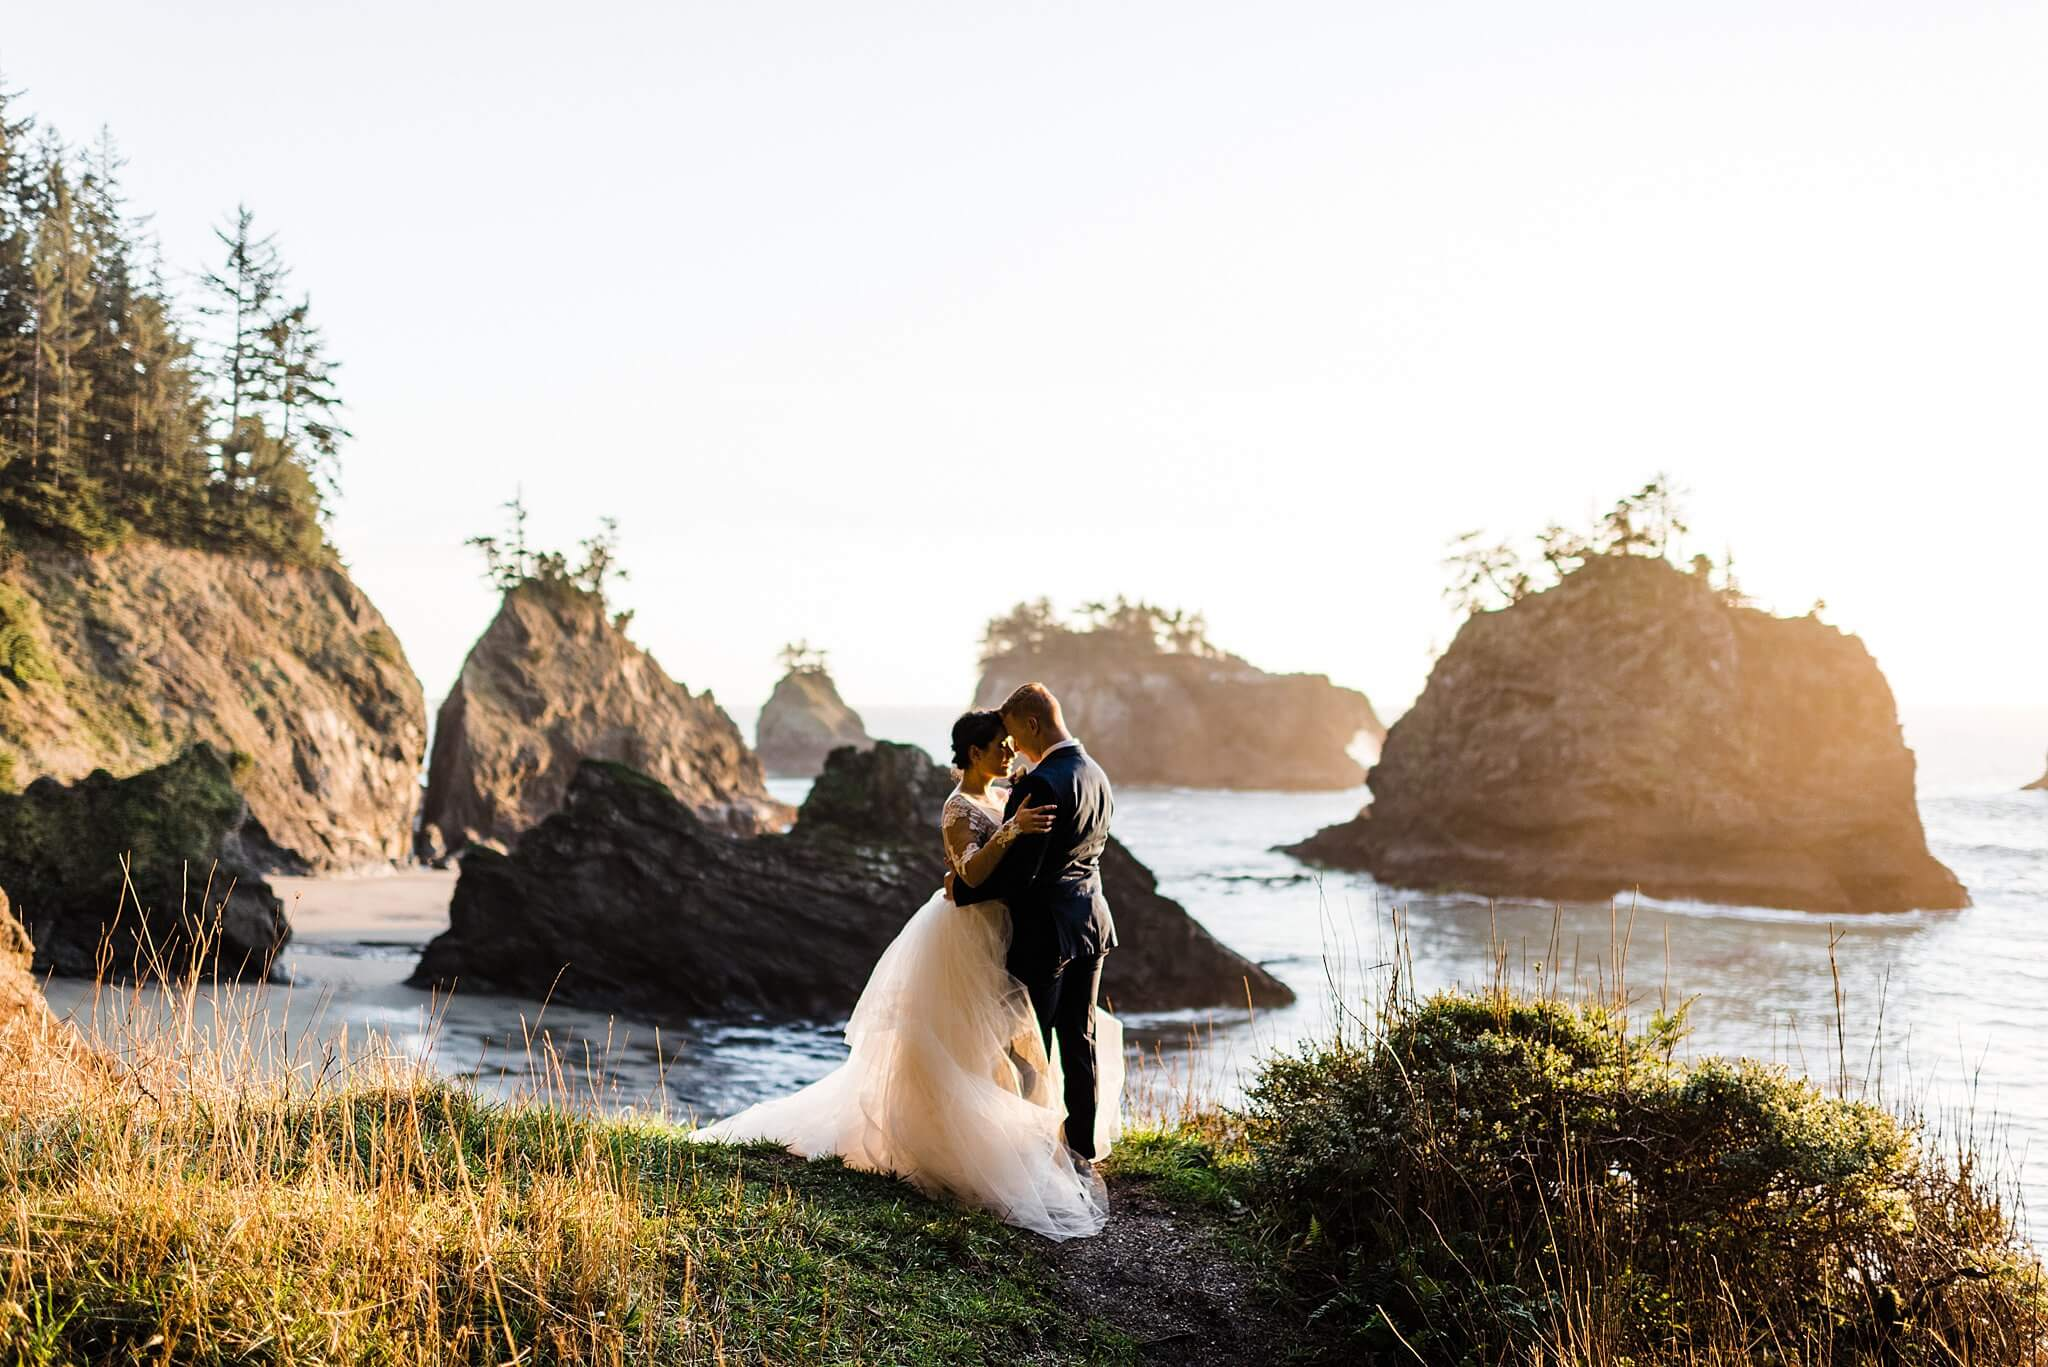 S Photography,adventure,adventure photographer,boho,boho wedding,california,elope,elopement,hayley paige,indie,jedediah smith,montana,national park wedding,oregon,oregon coast,redwoods,roseburg,samuel h boardman,small wedding,